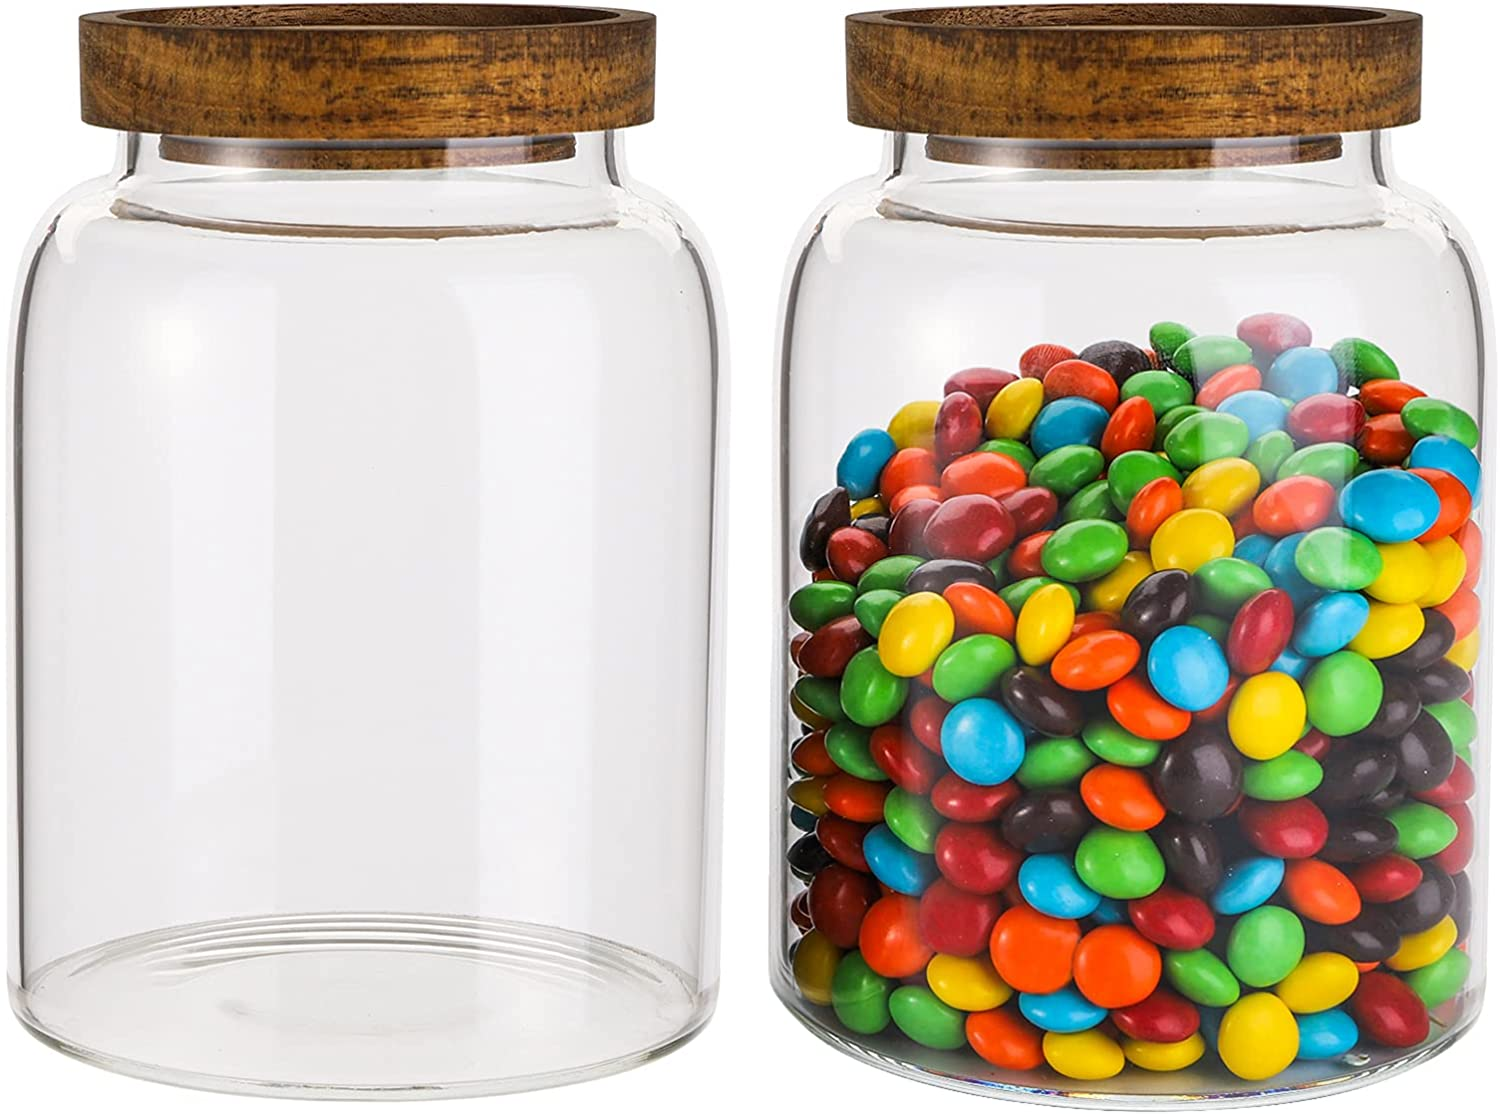 Bekith 2 Pack 42 FL OZ (1250ml) Glass Storage Jars with Wooden Lids, Glass Food Storage Container with Airtight Lid, Glass Pantry Canister for Beans, Rice, Sugar, Coffee and etc